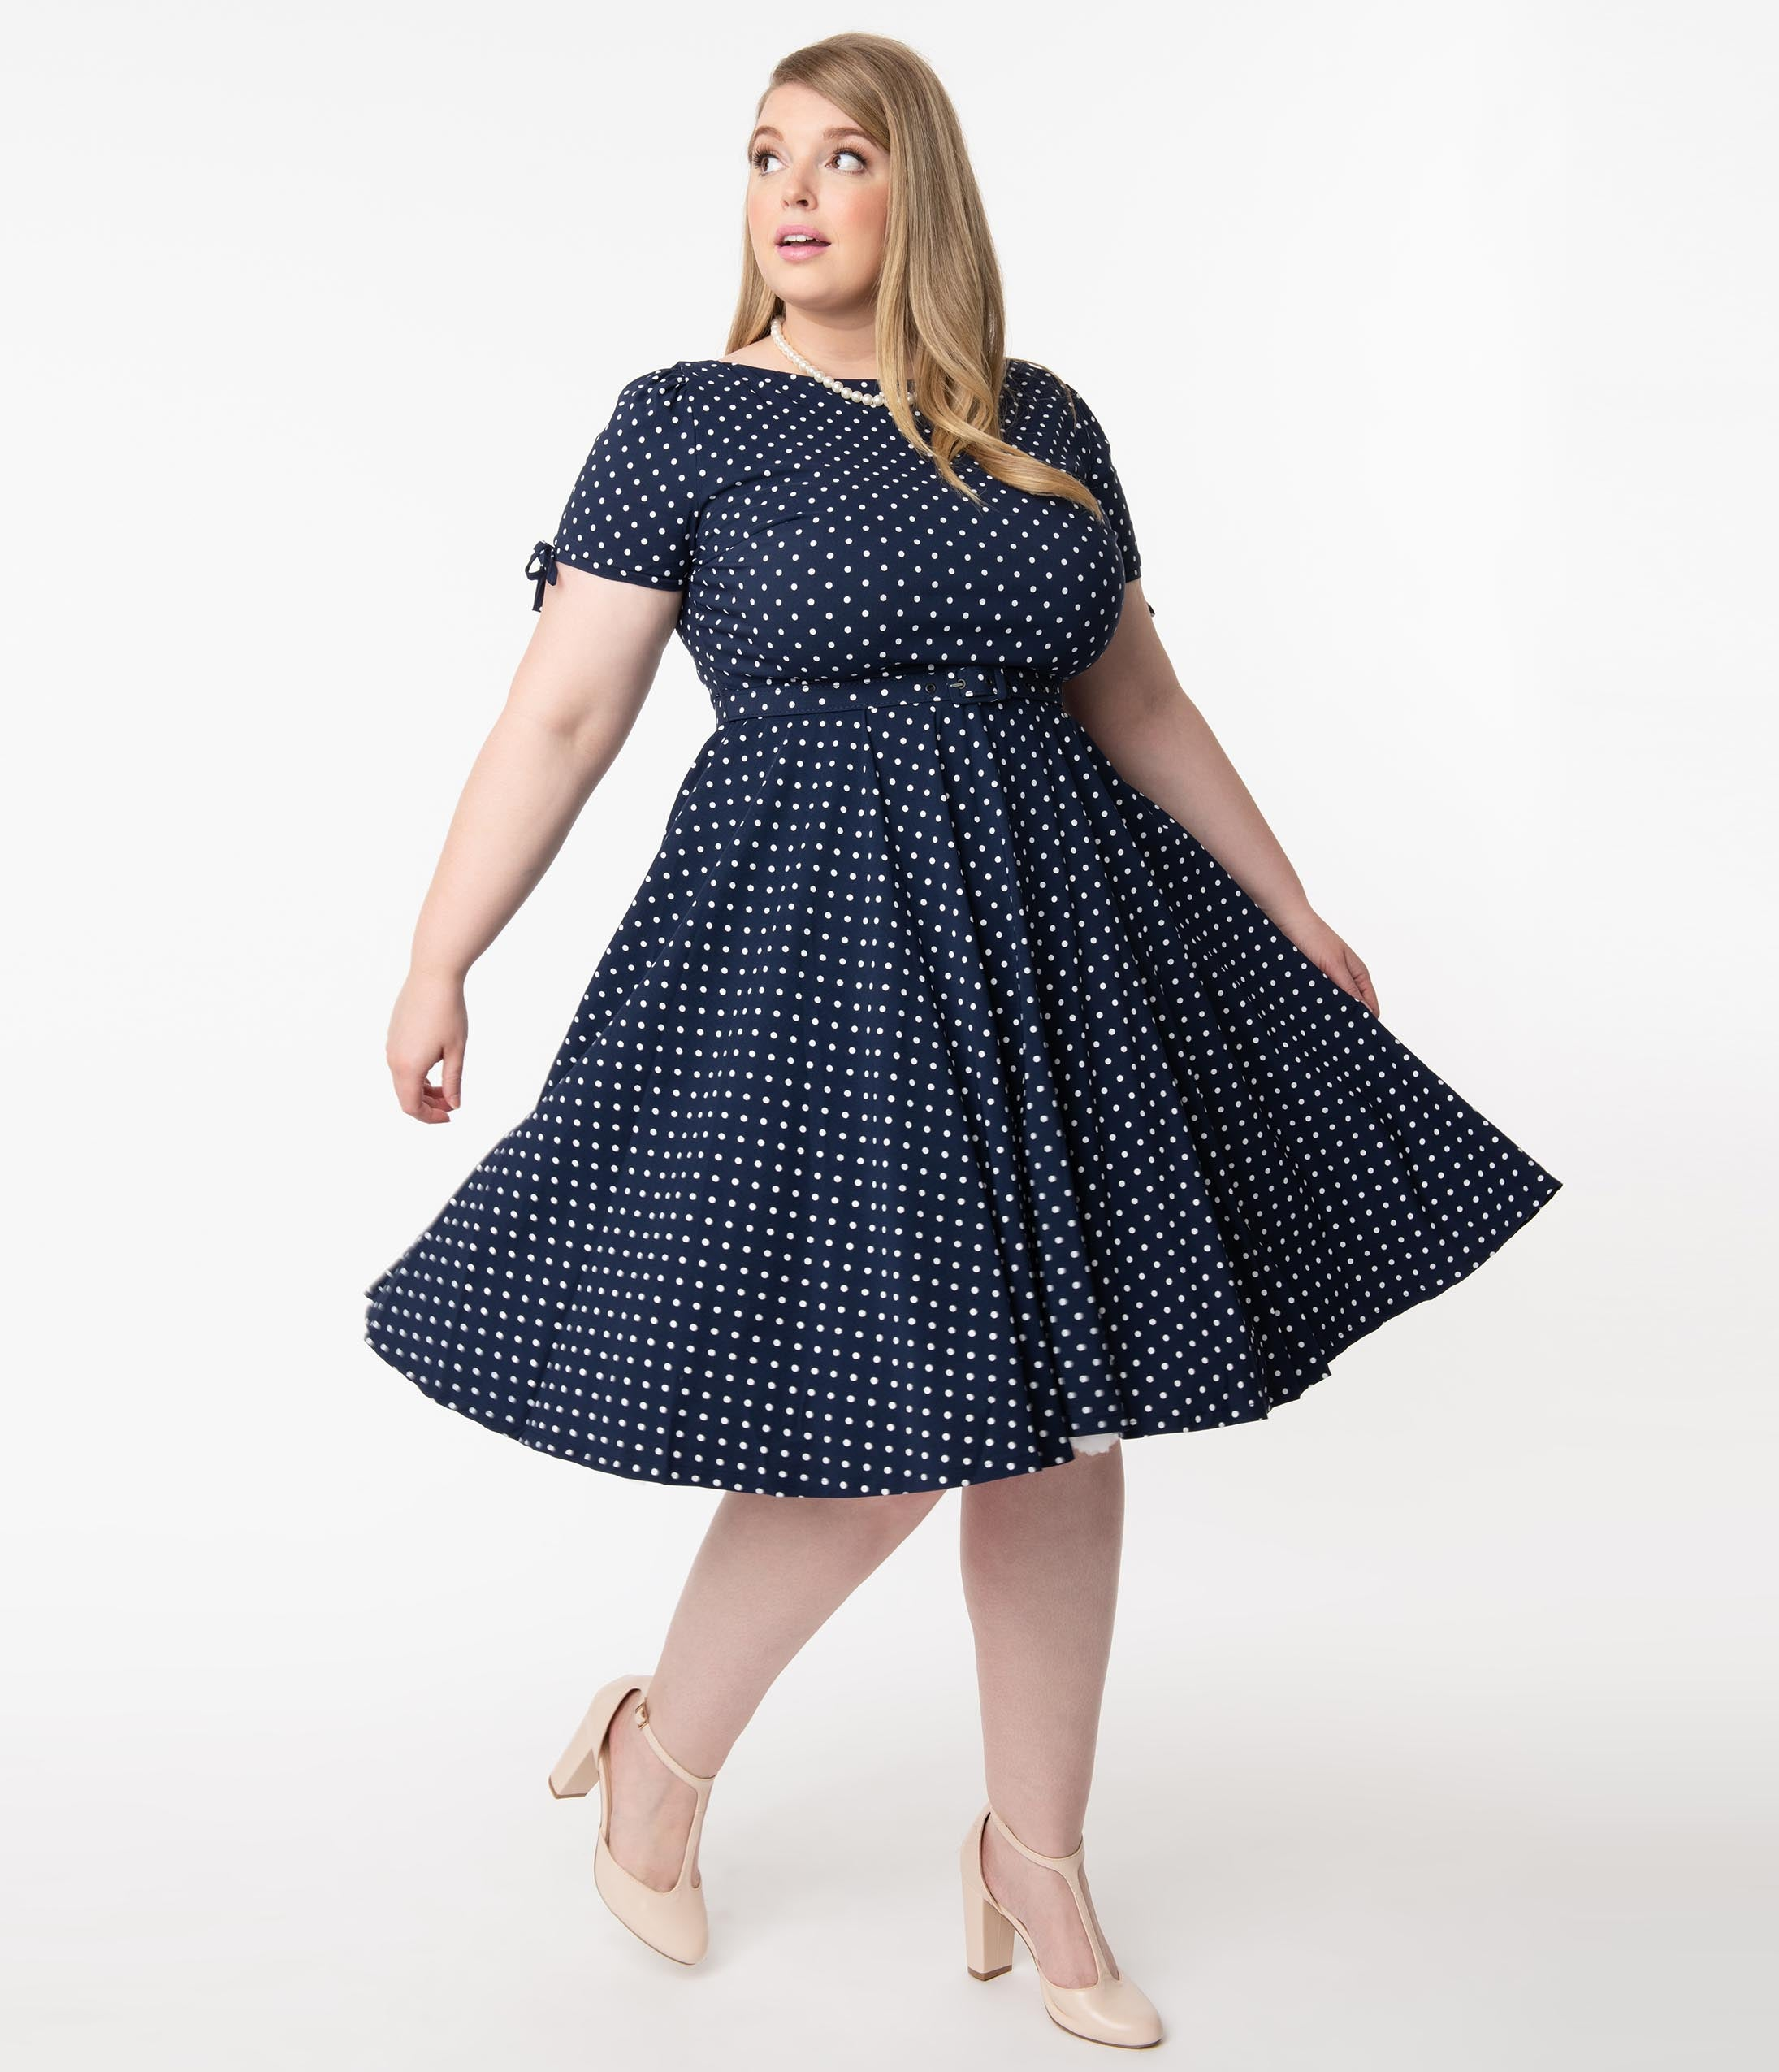 1950s Plus Size Dresses, Swing Dresses Unique Vintage Plus Size Navy  White Pin Dot Sasha Swing Dress $82.00 AT vintagedancer.com